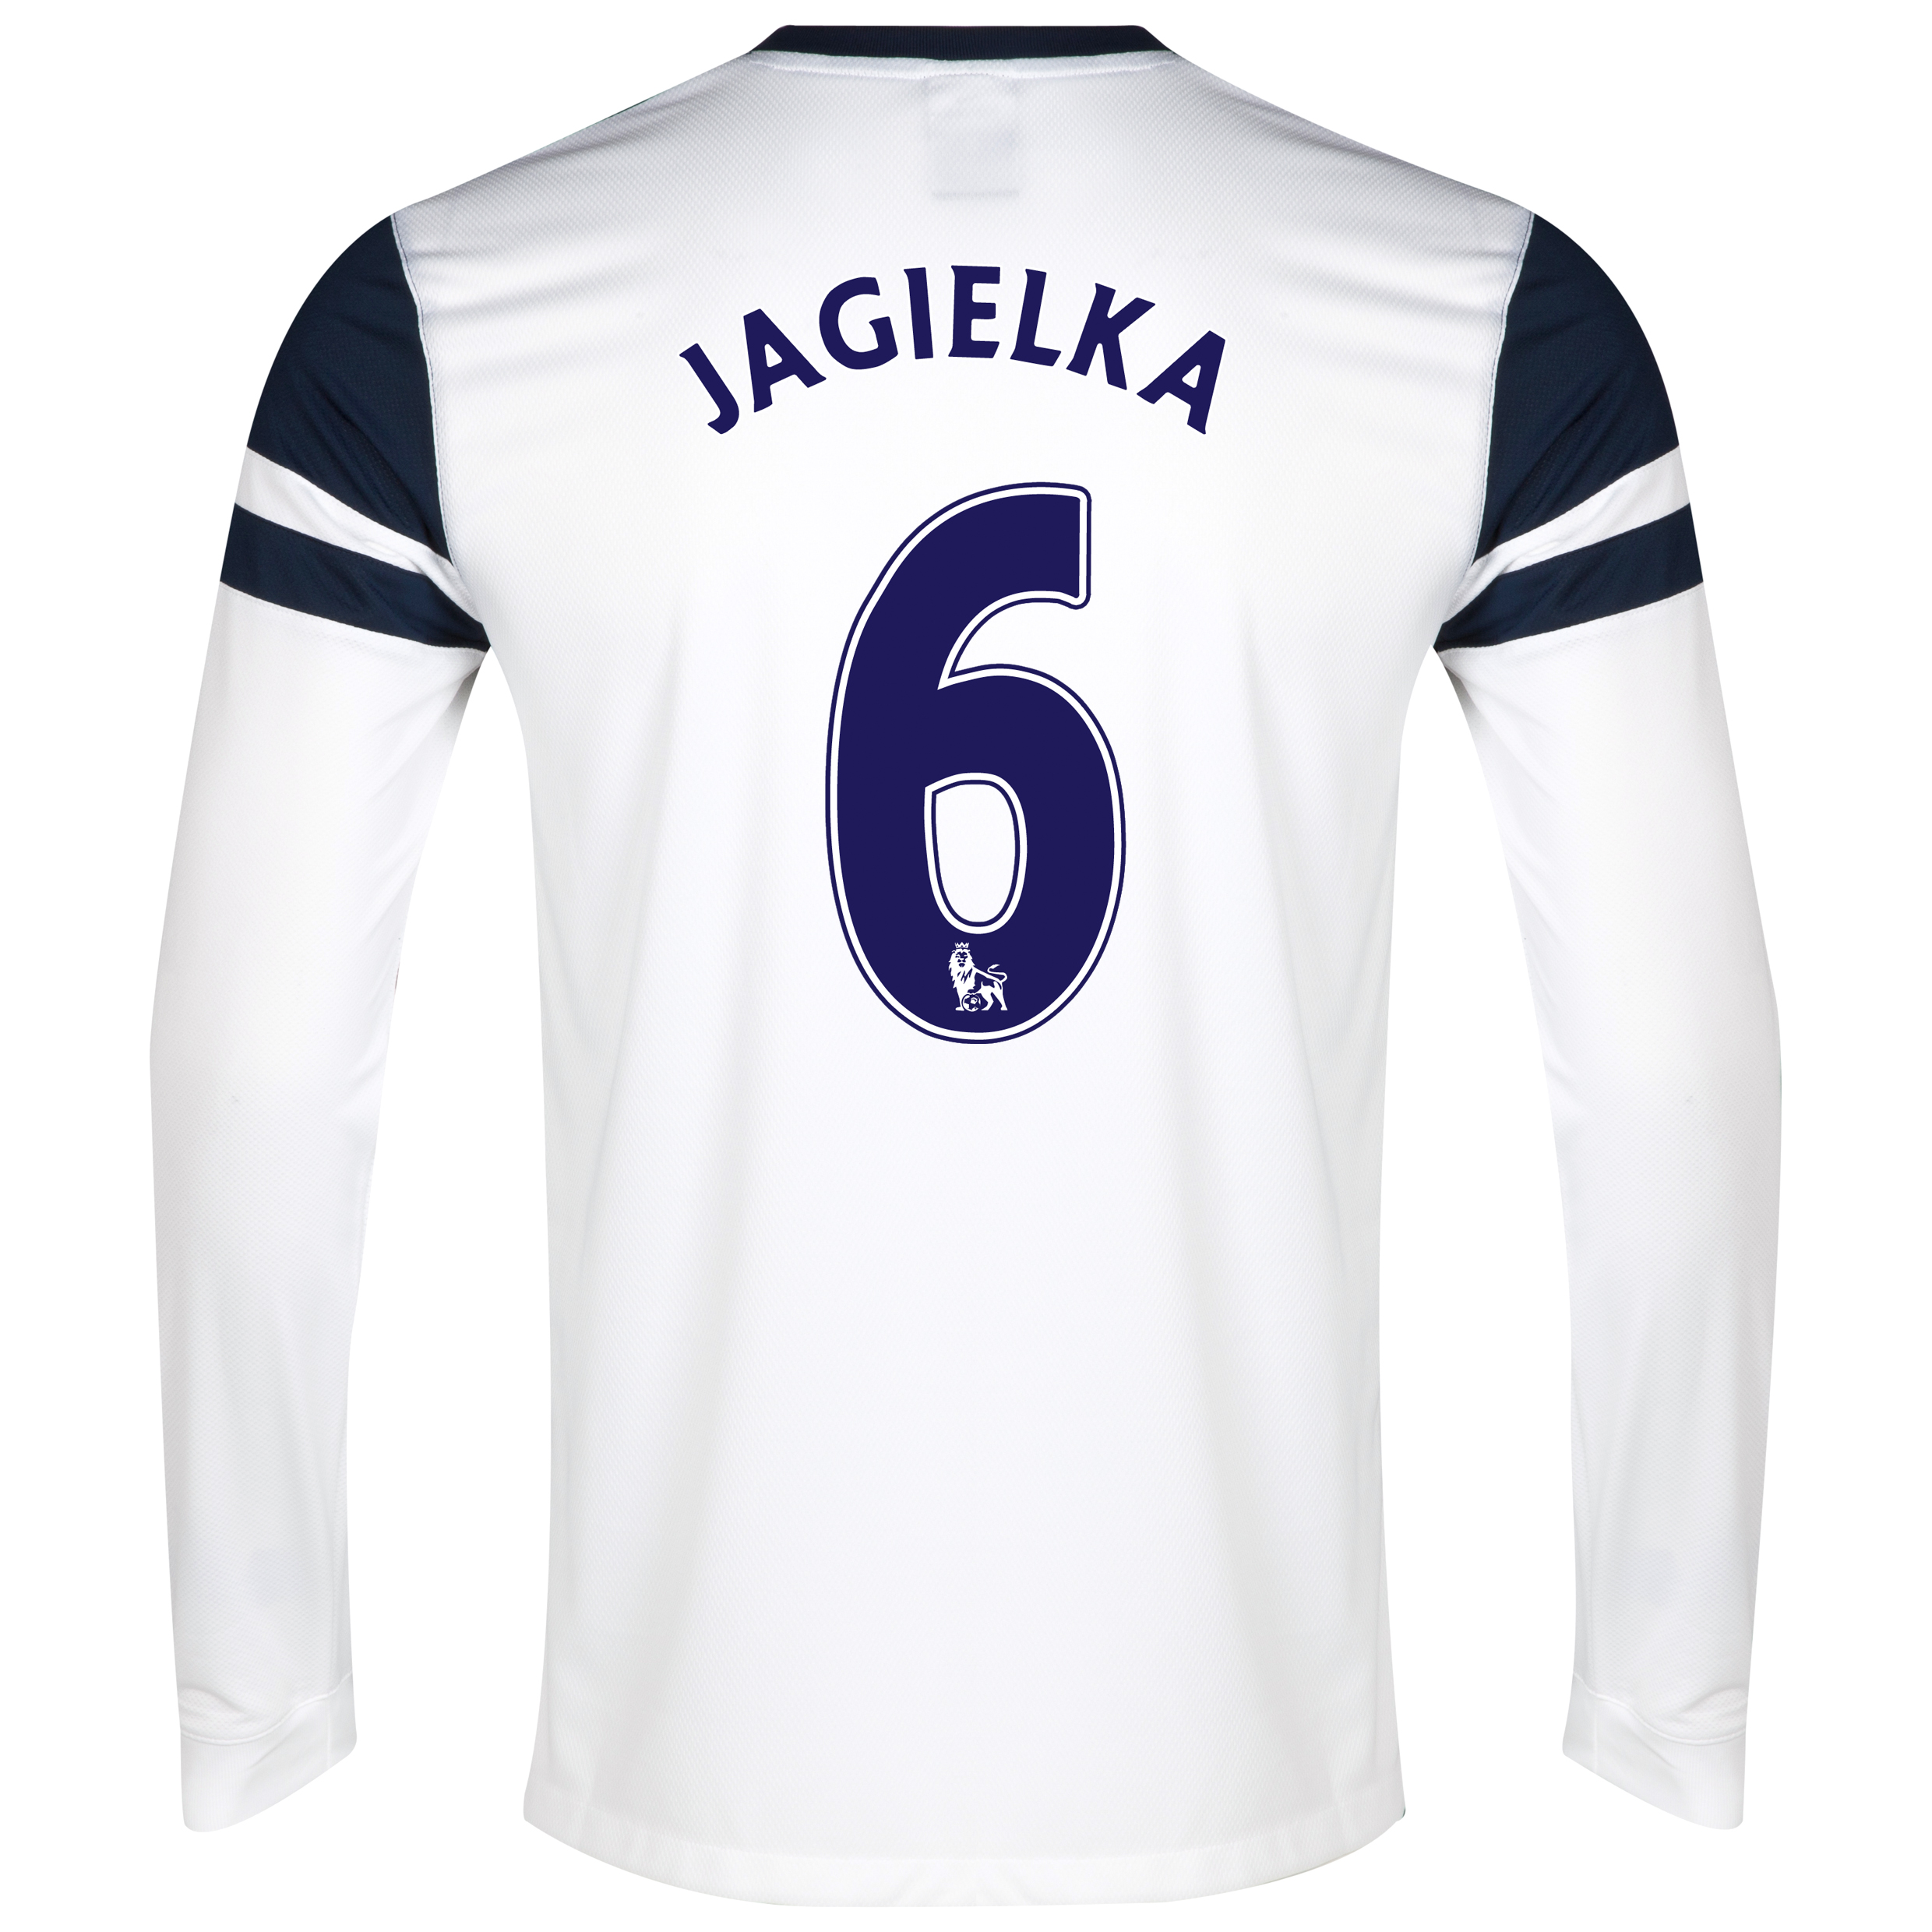 Everton 3rd Shirt 2013/14 - Junior - Long Sleeved White with Jagielka 6 printing